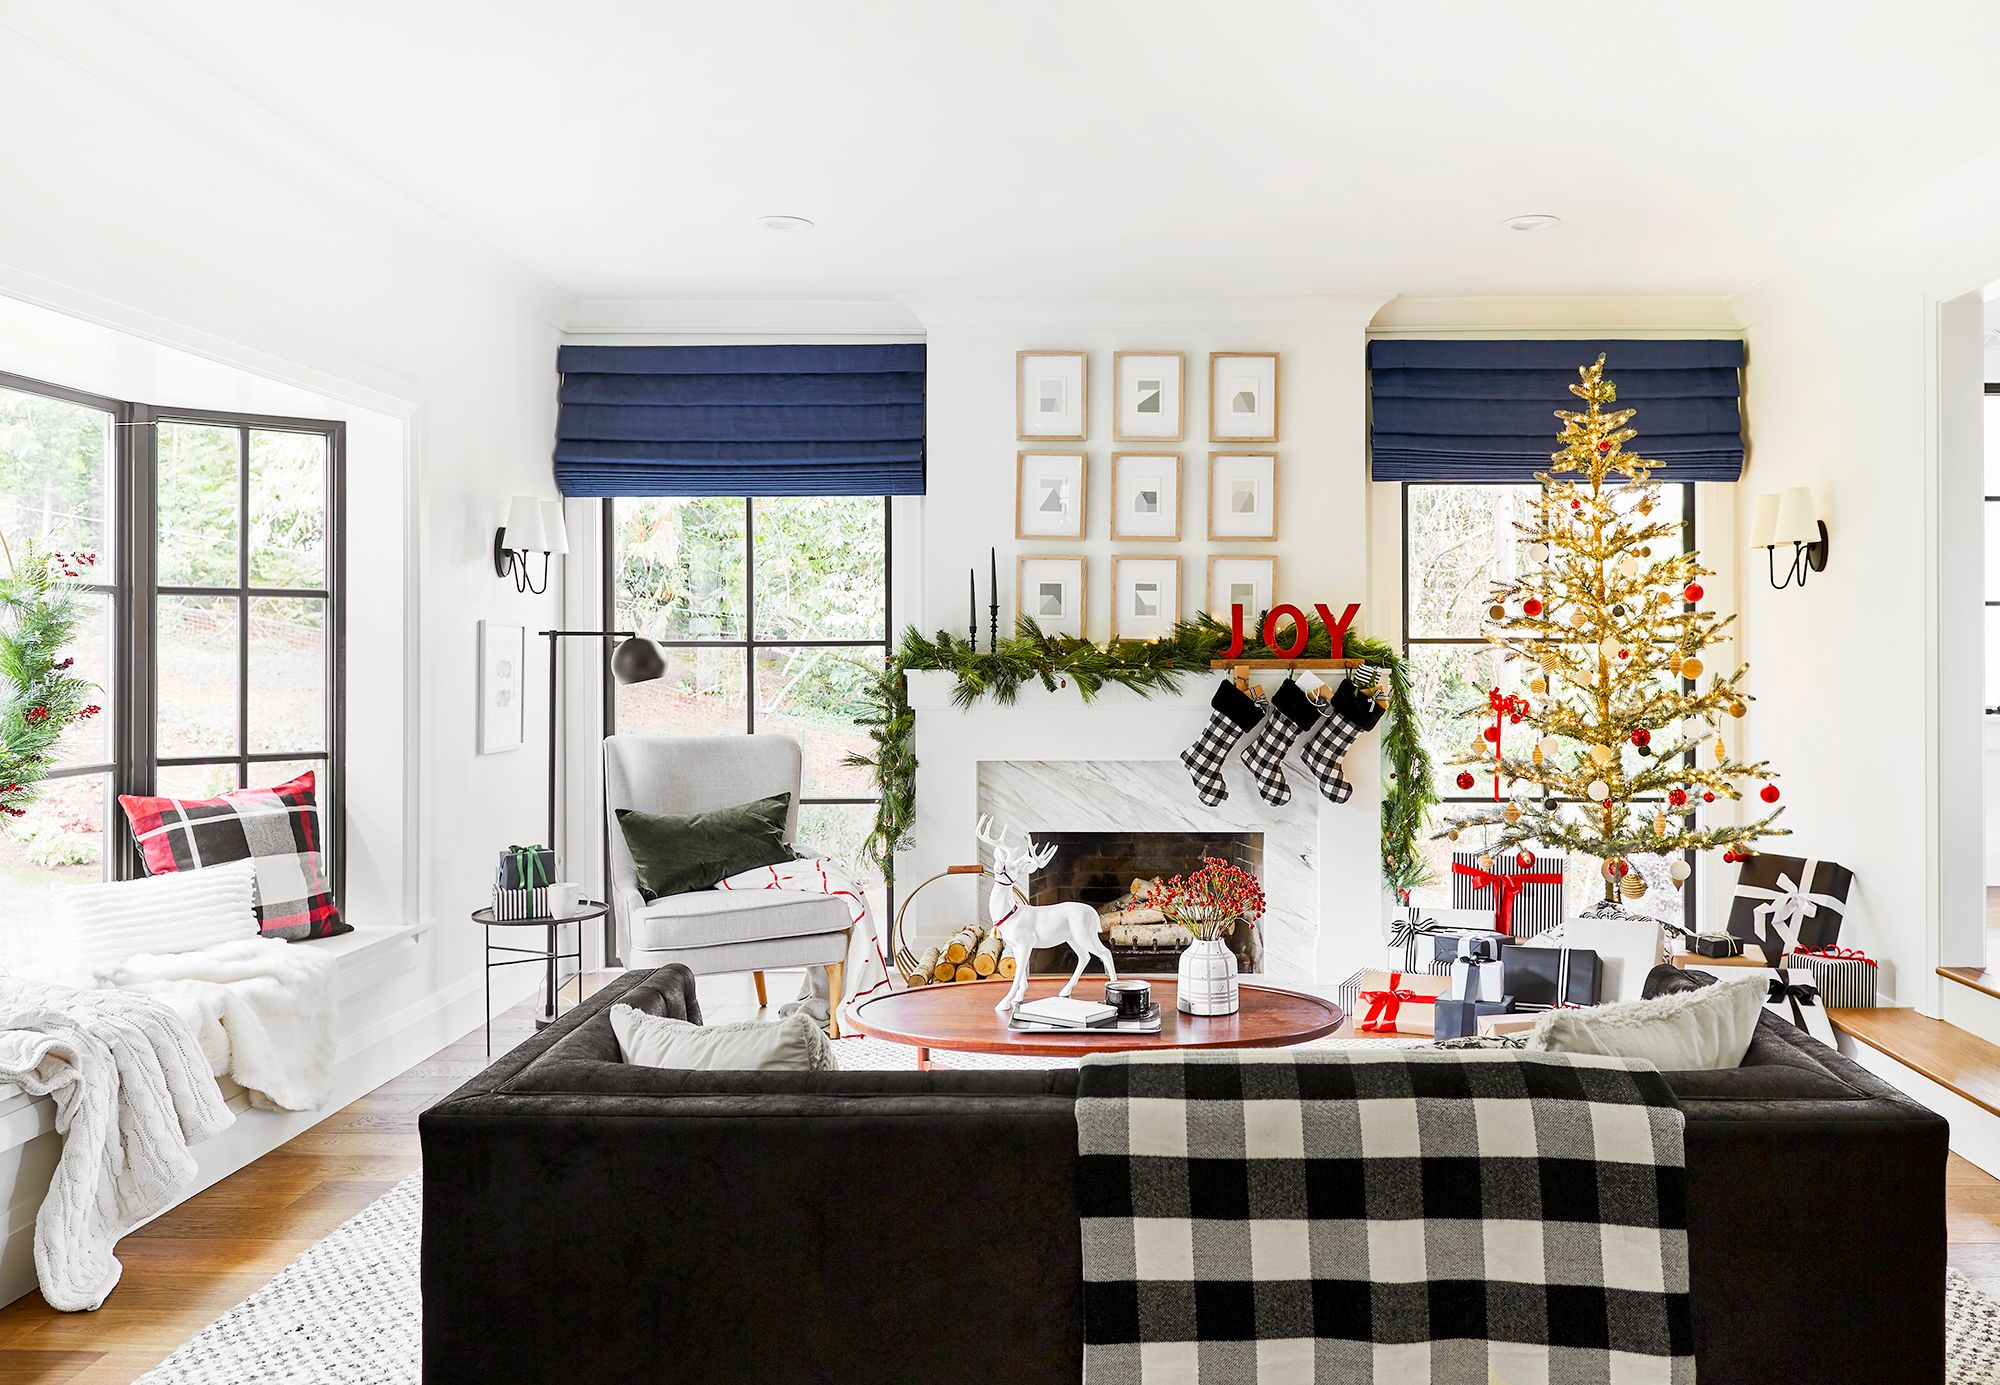 12 Best Black And White Christmas Decorations Chic Black And White Holiday Decor